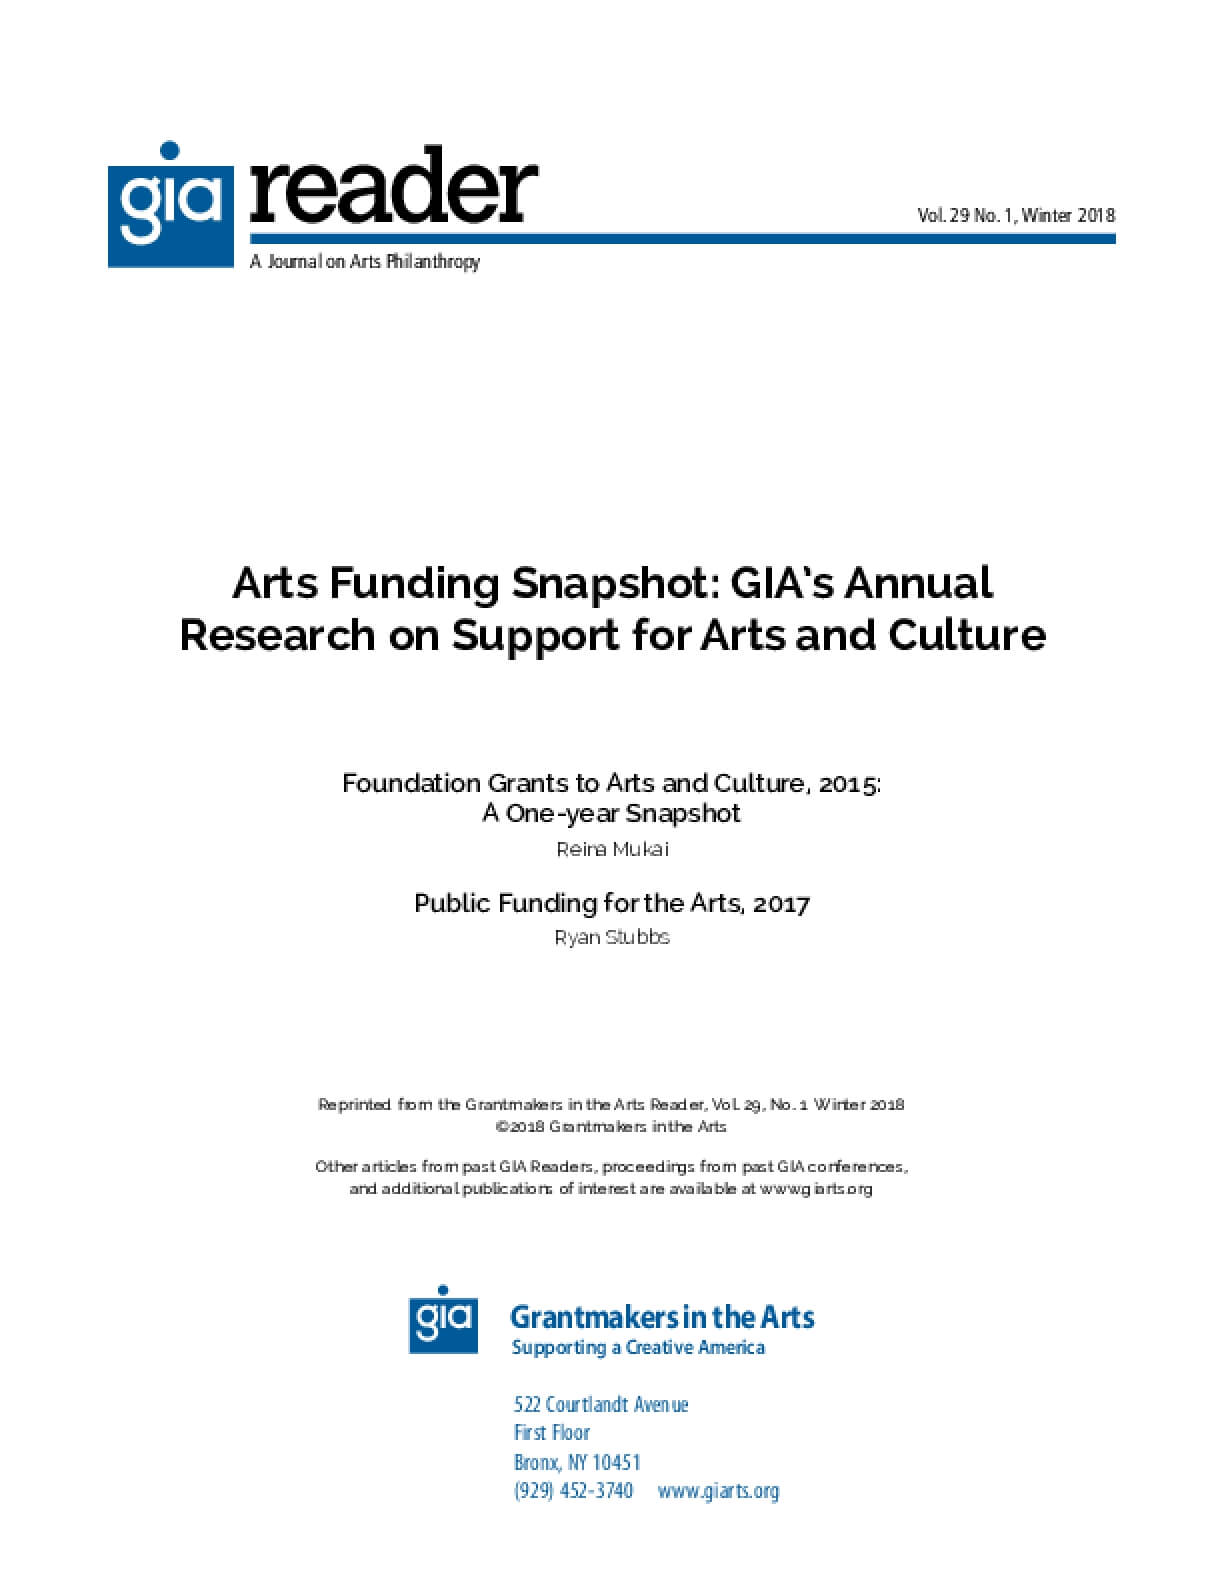 Arts Funding Snapshot: GIA's Annual Research on Support for Arts and Culture